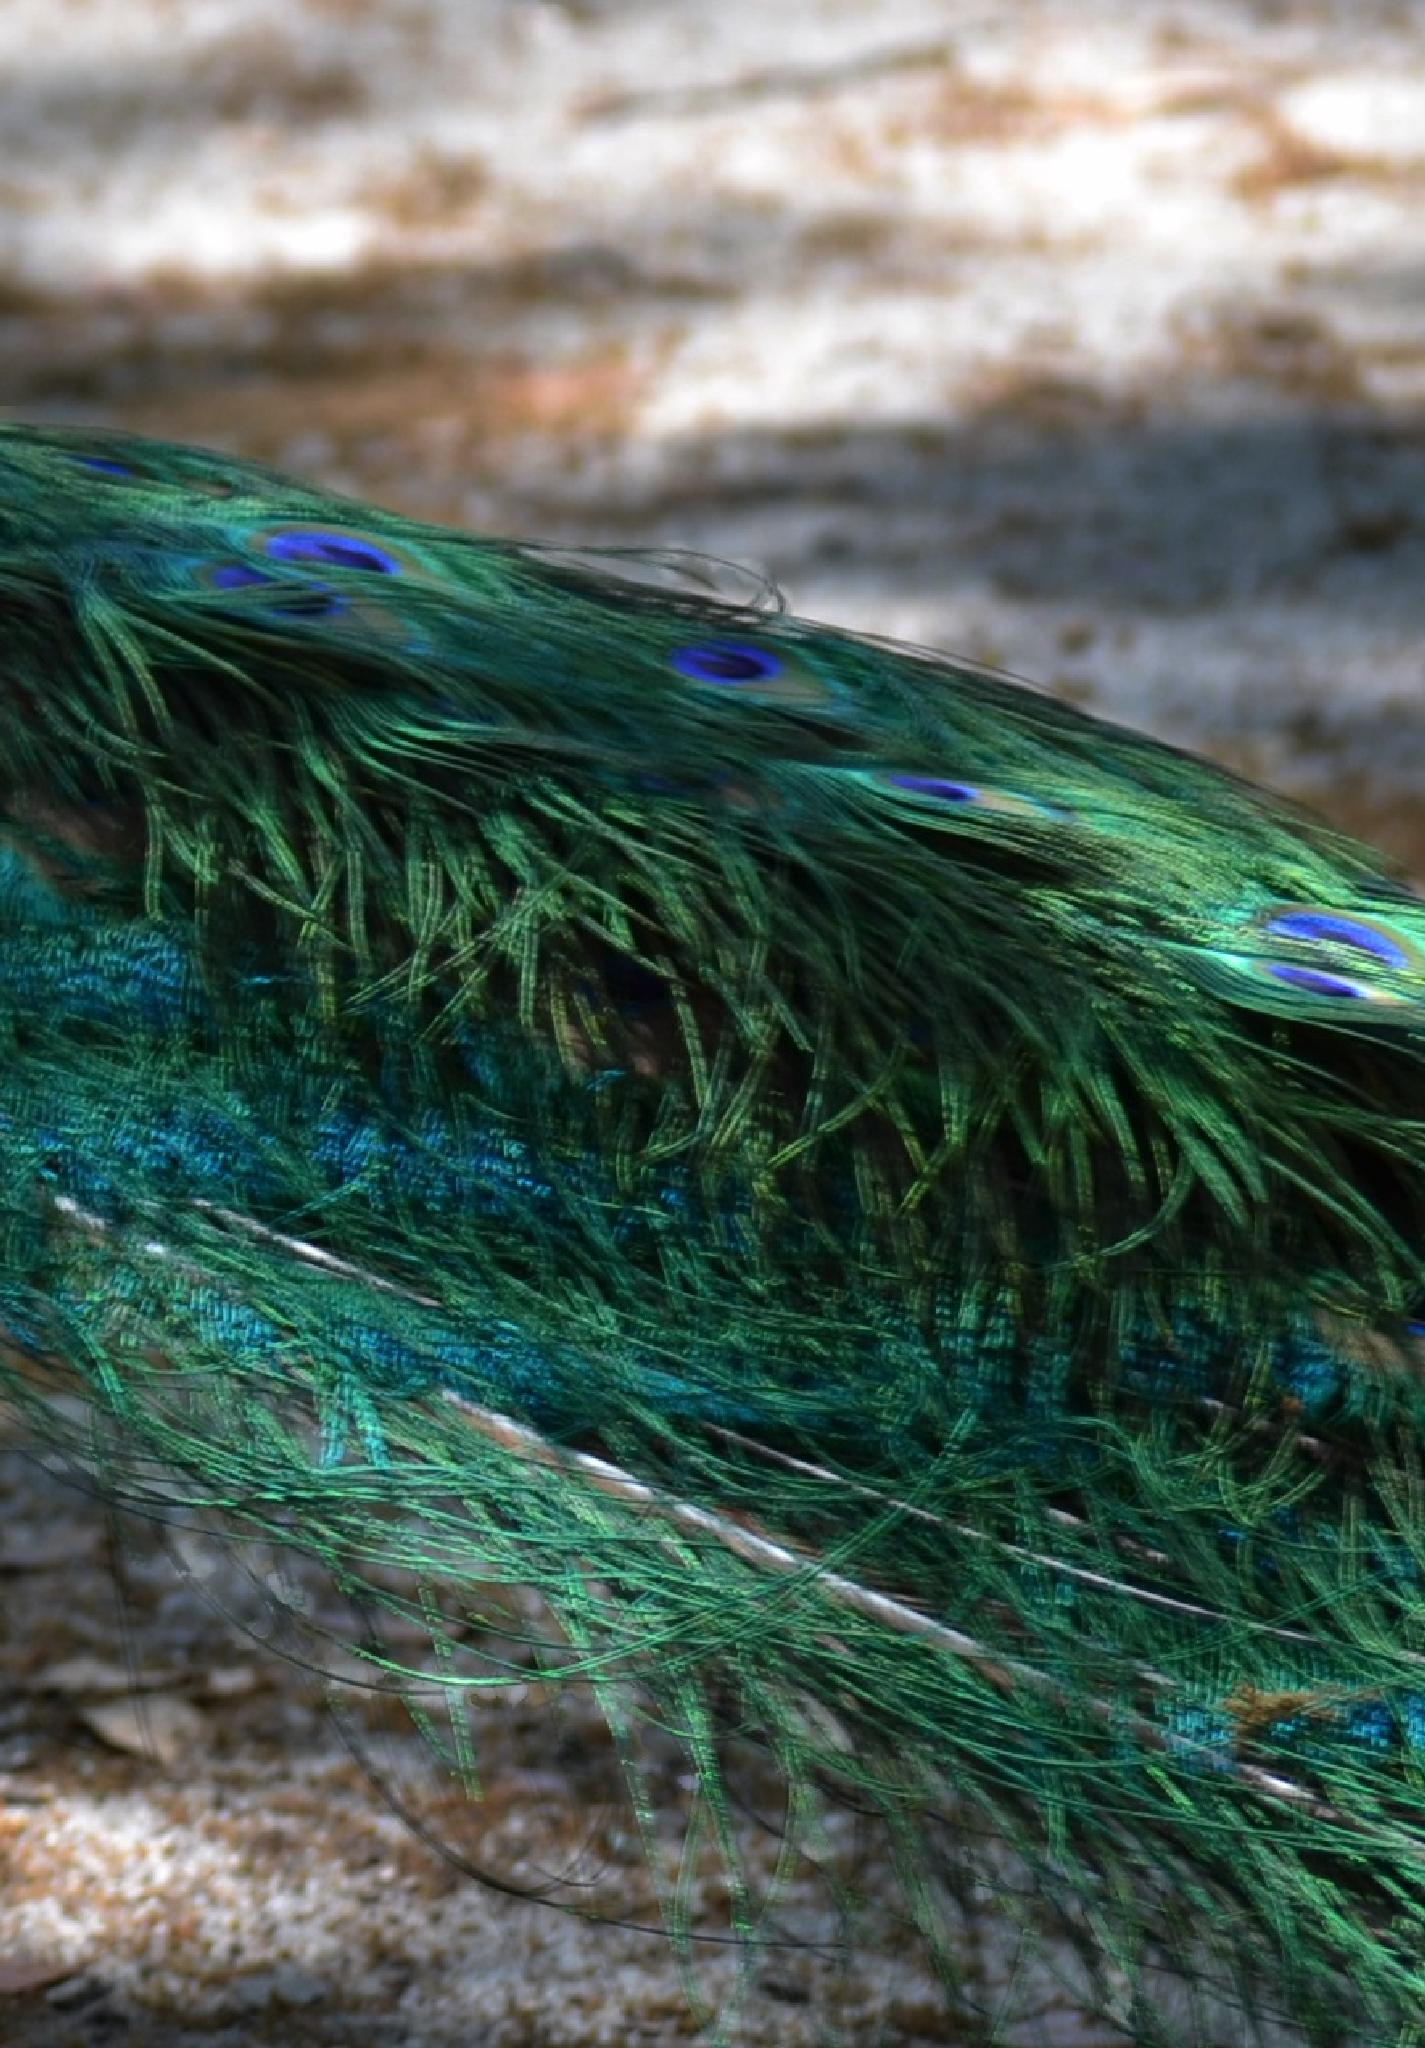 Peacock's Tail by lindandarrell